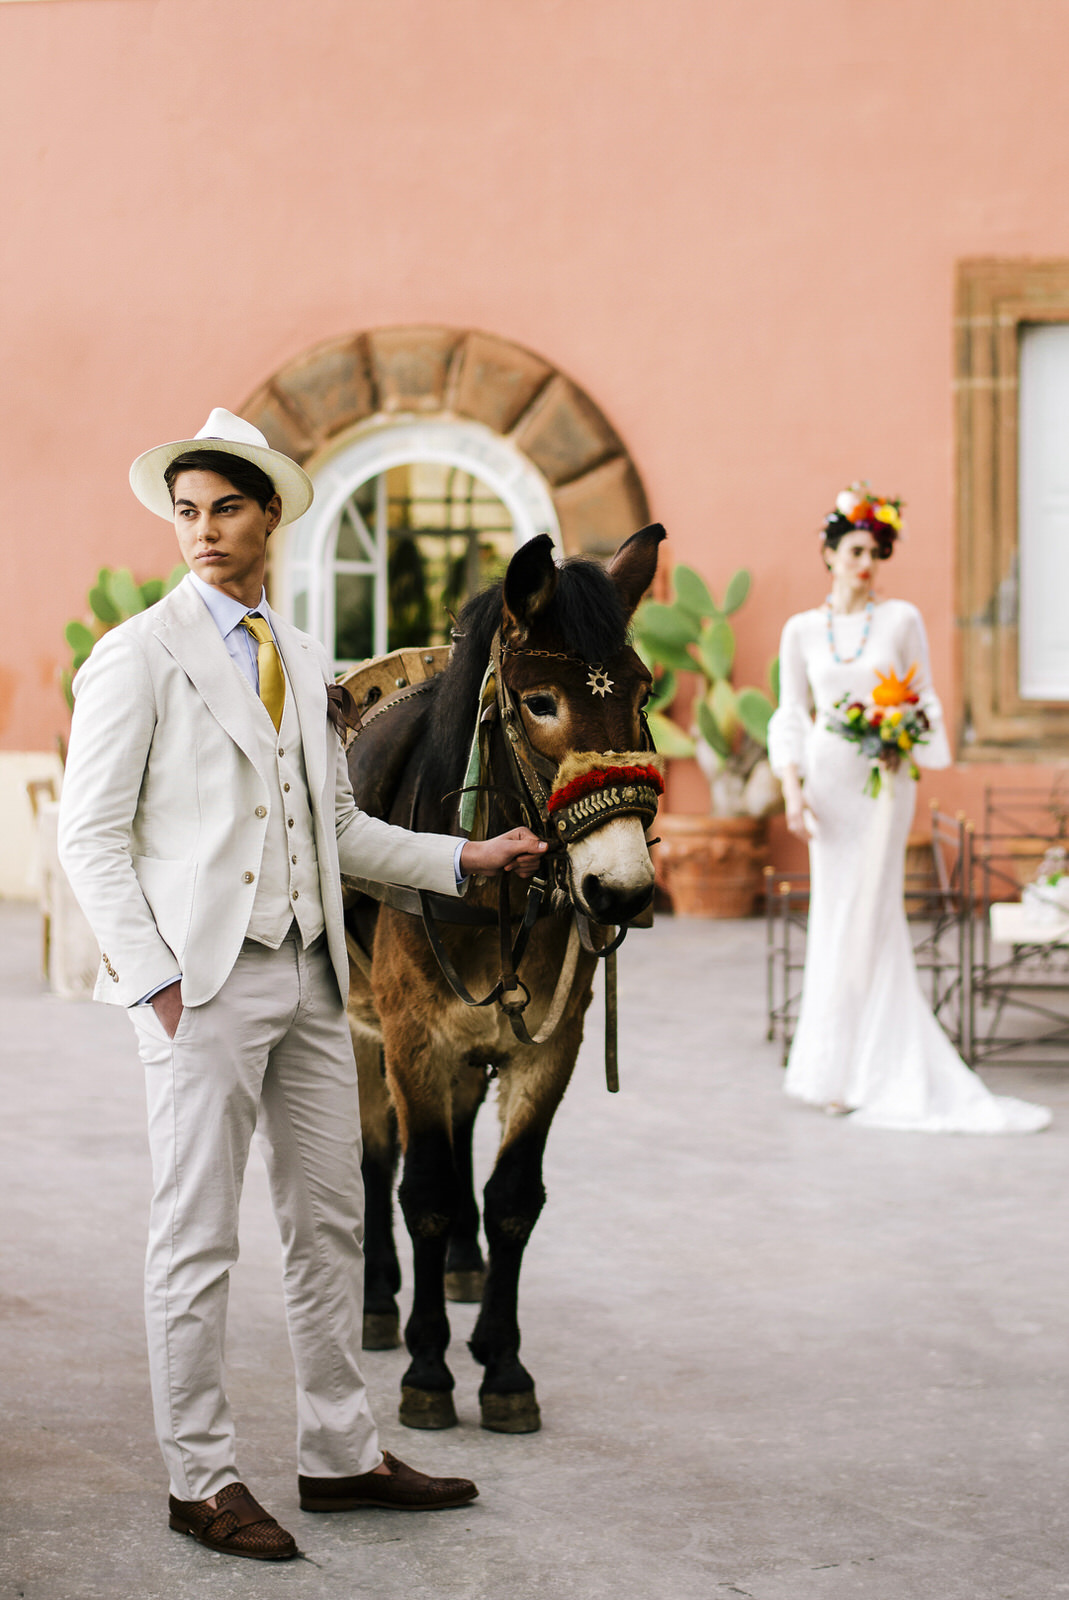 the groom with a mule and the bride on the background